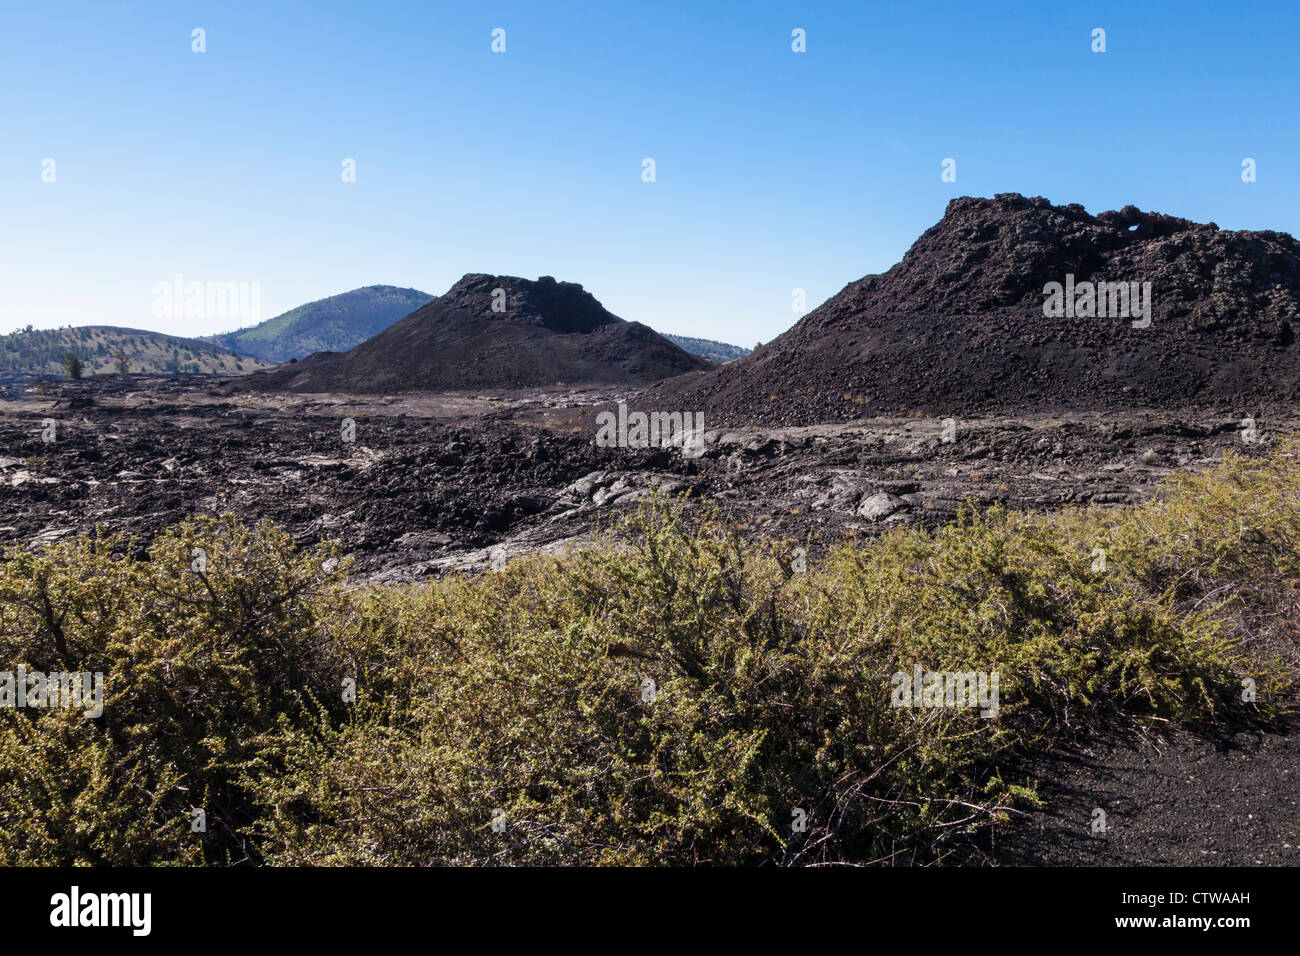 Rugged Terrain in Craters of the Moon National Monument and Preserve - Stock Image